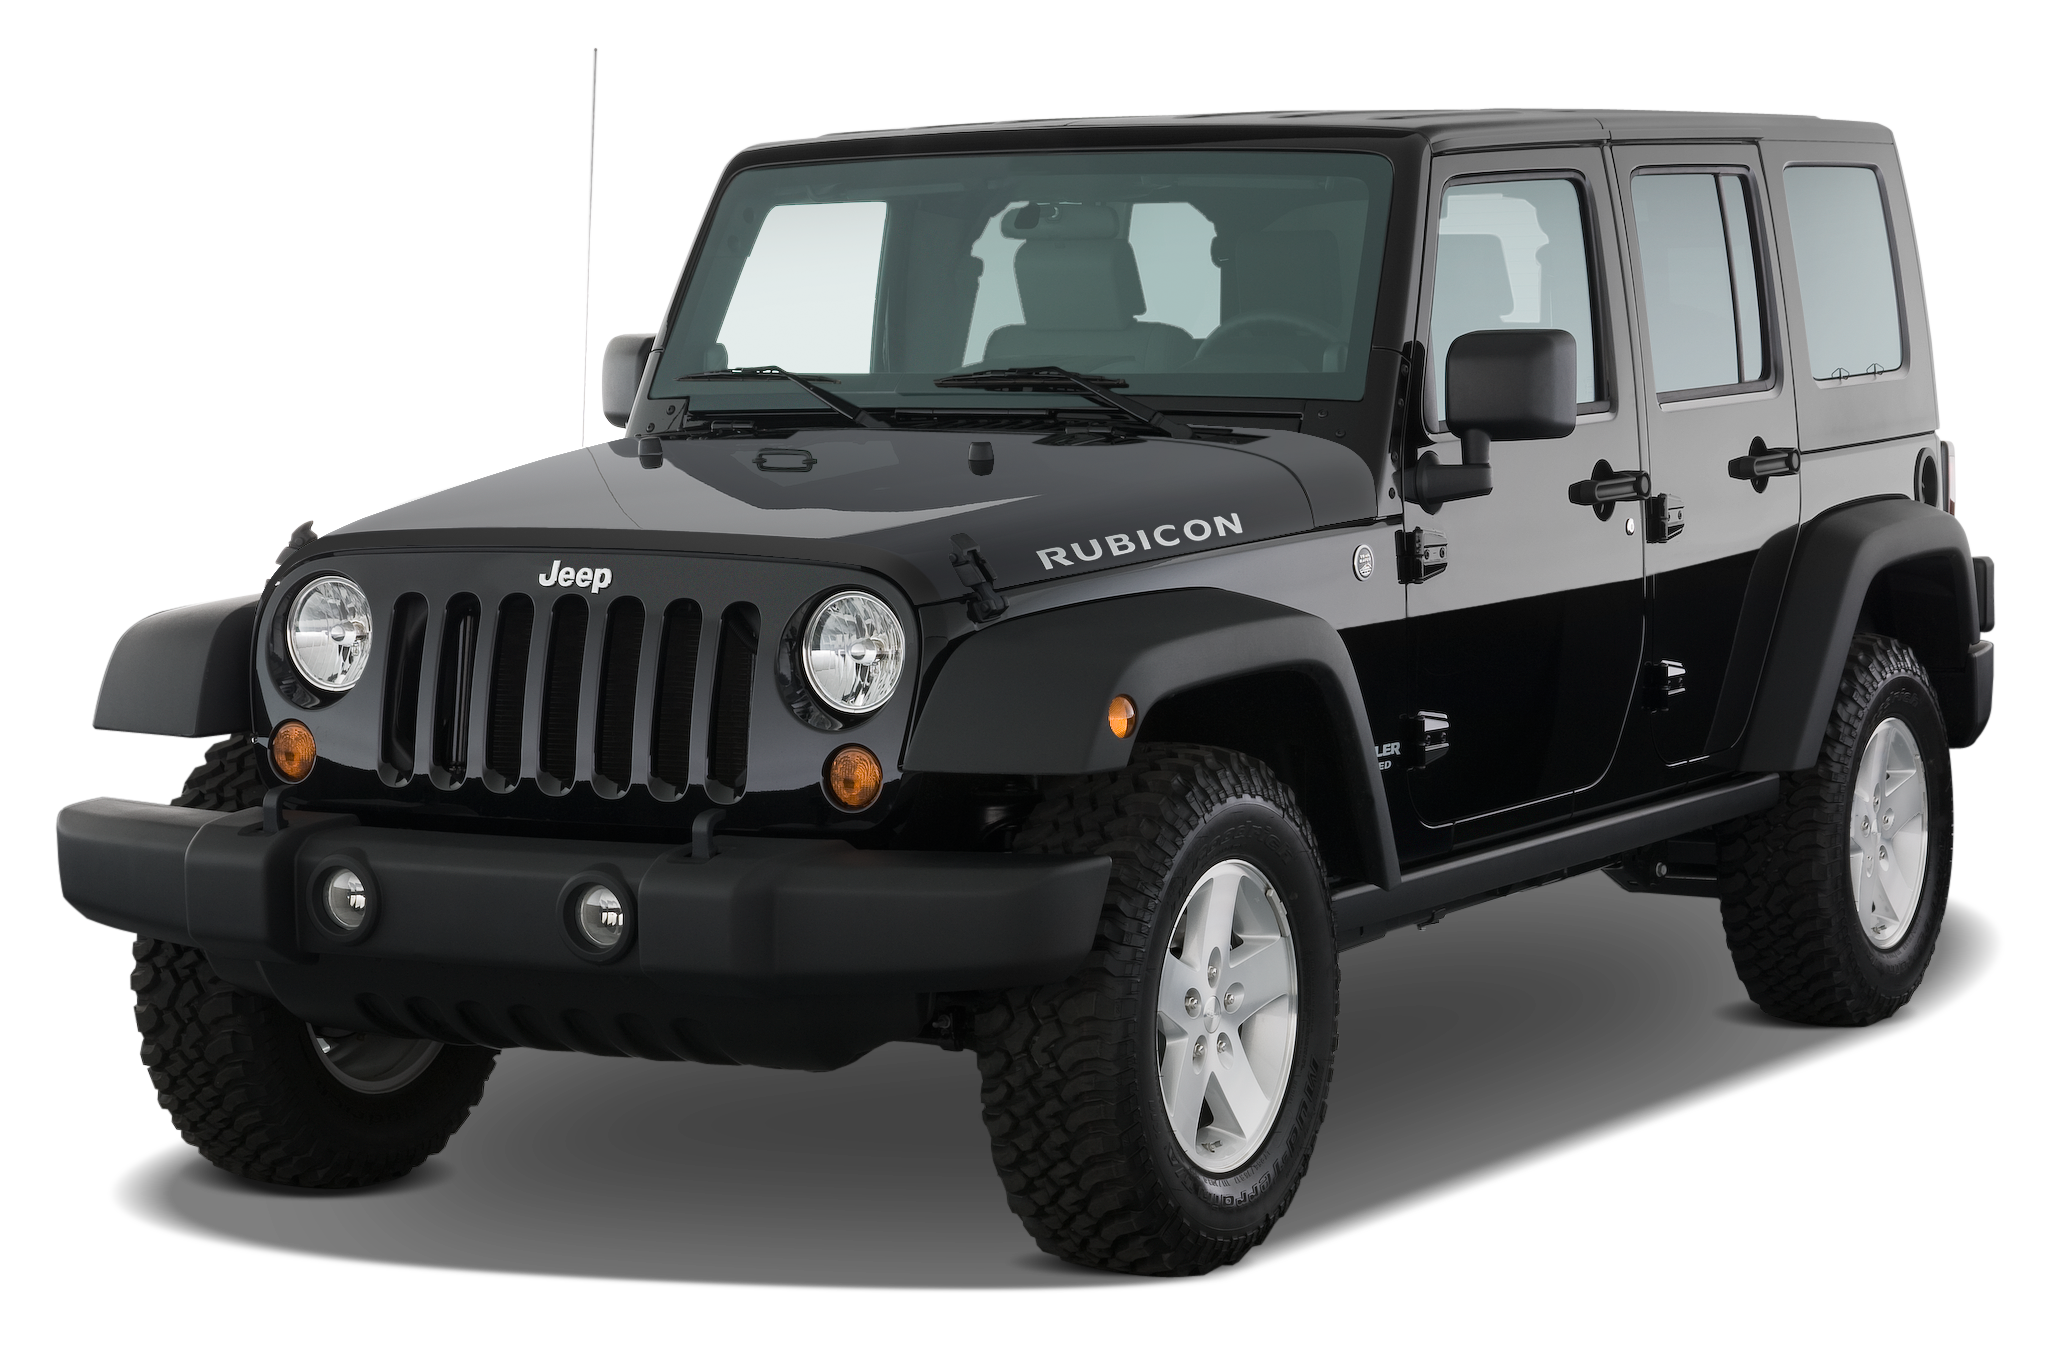 2010 Jeep Wrangler Recalled Due To Automatic Transmission